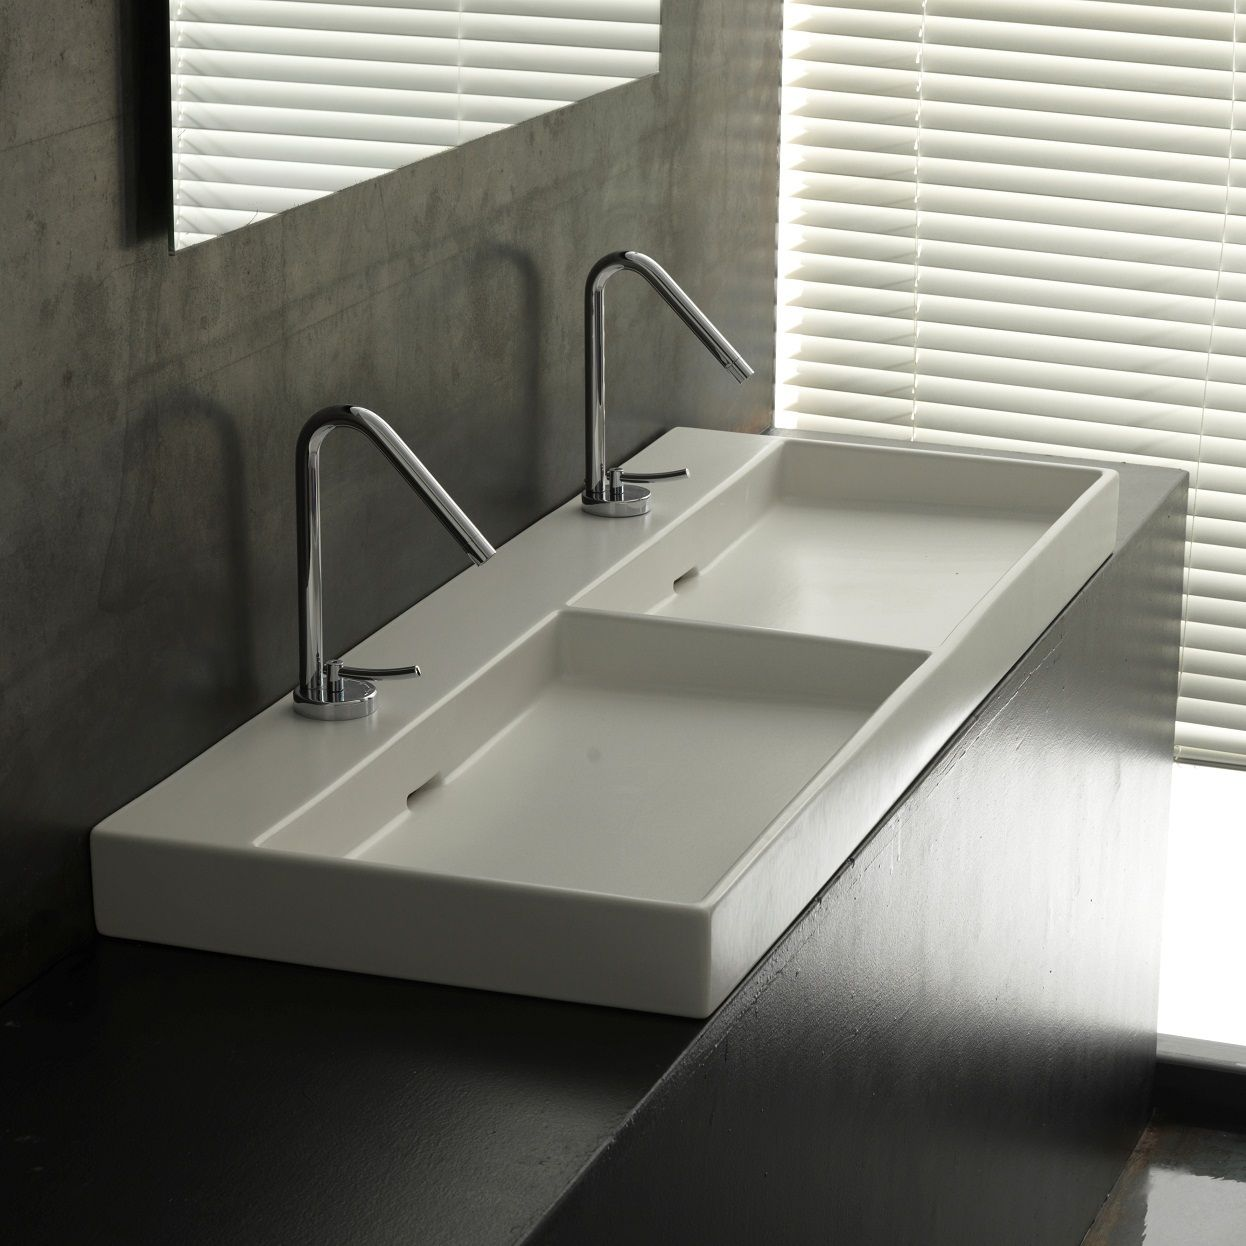 Clean the Area Thoroughly - Double Bathroom Sink